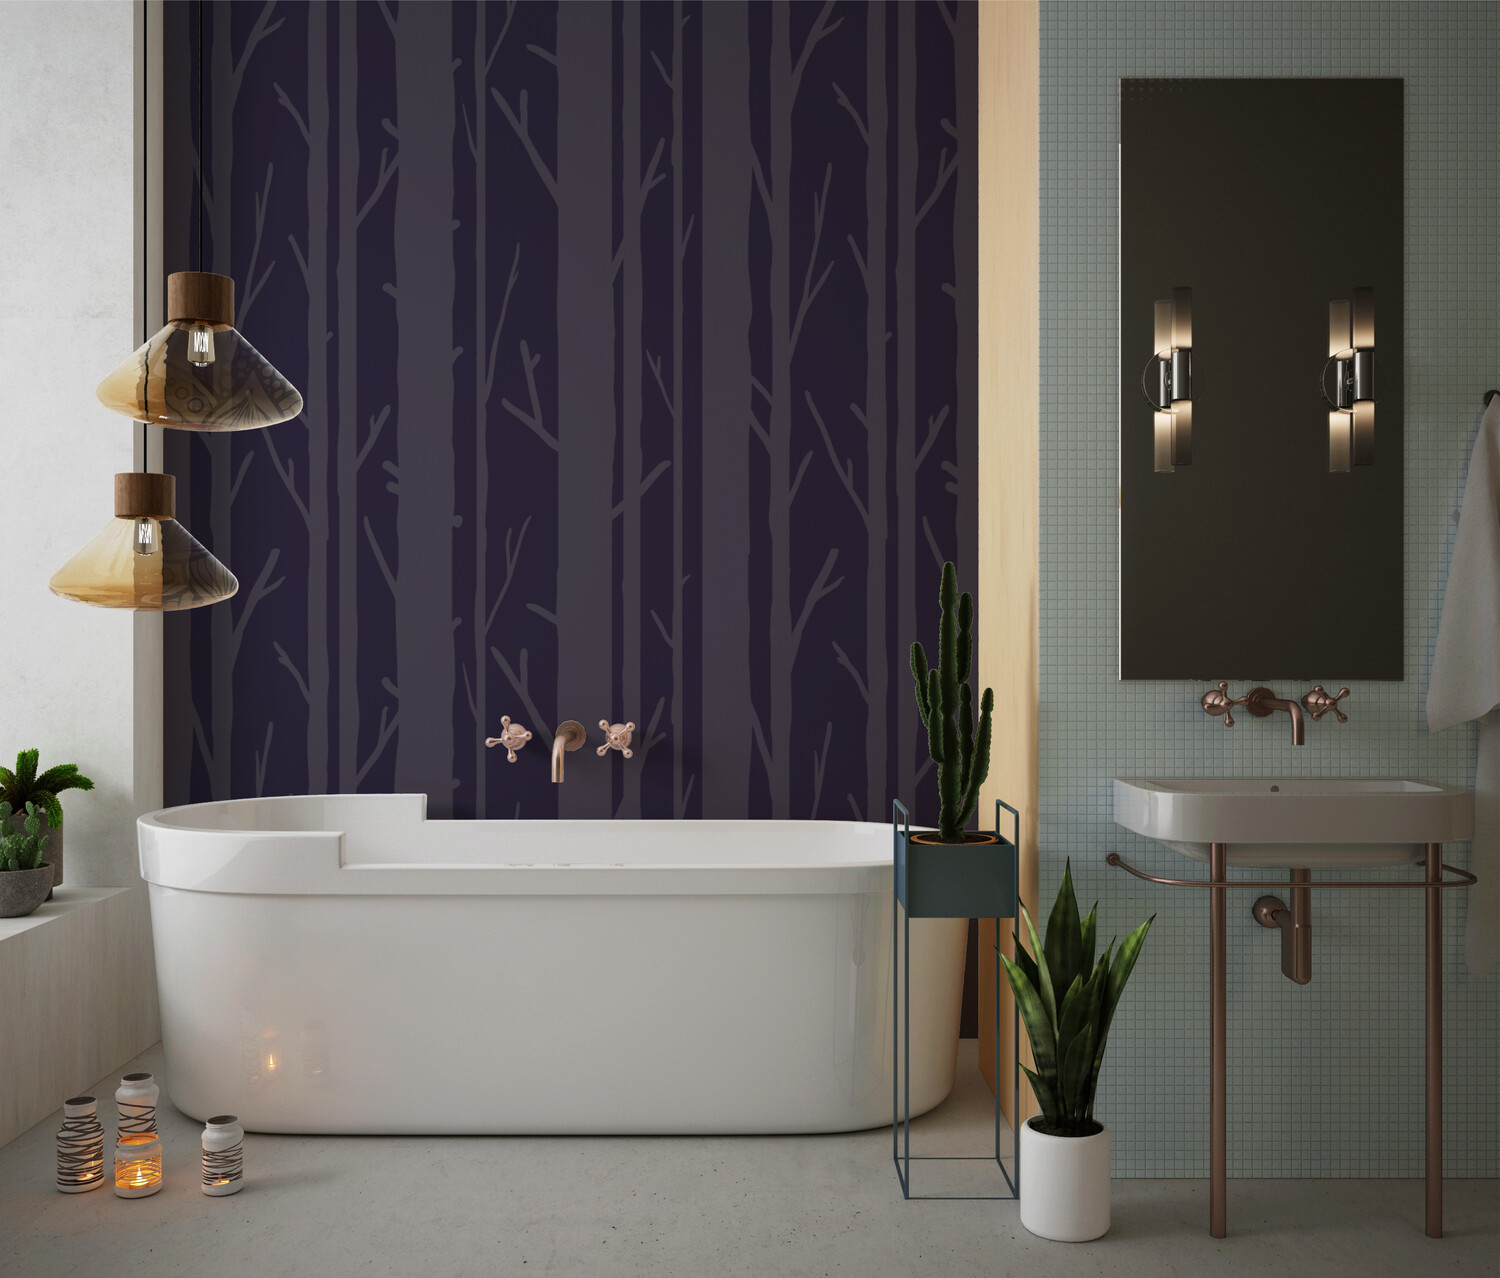 INTO THE WOODS   Vinyl Wall Wrap for Any Room   Removable Vinyl Wallpaper